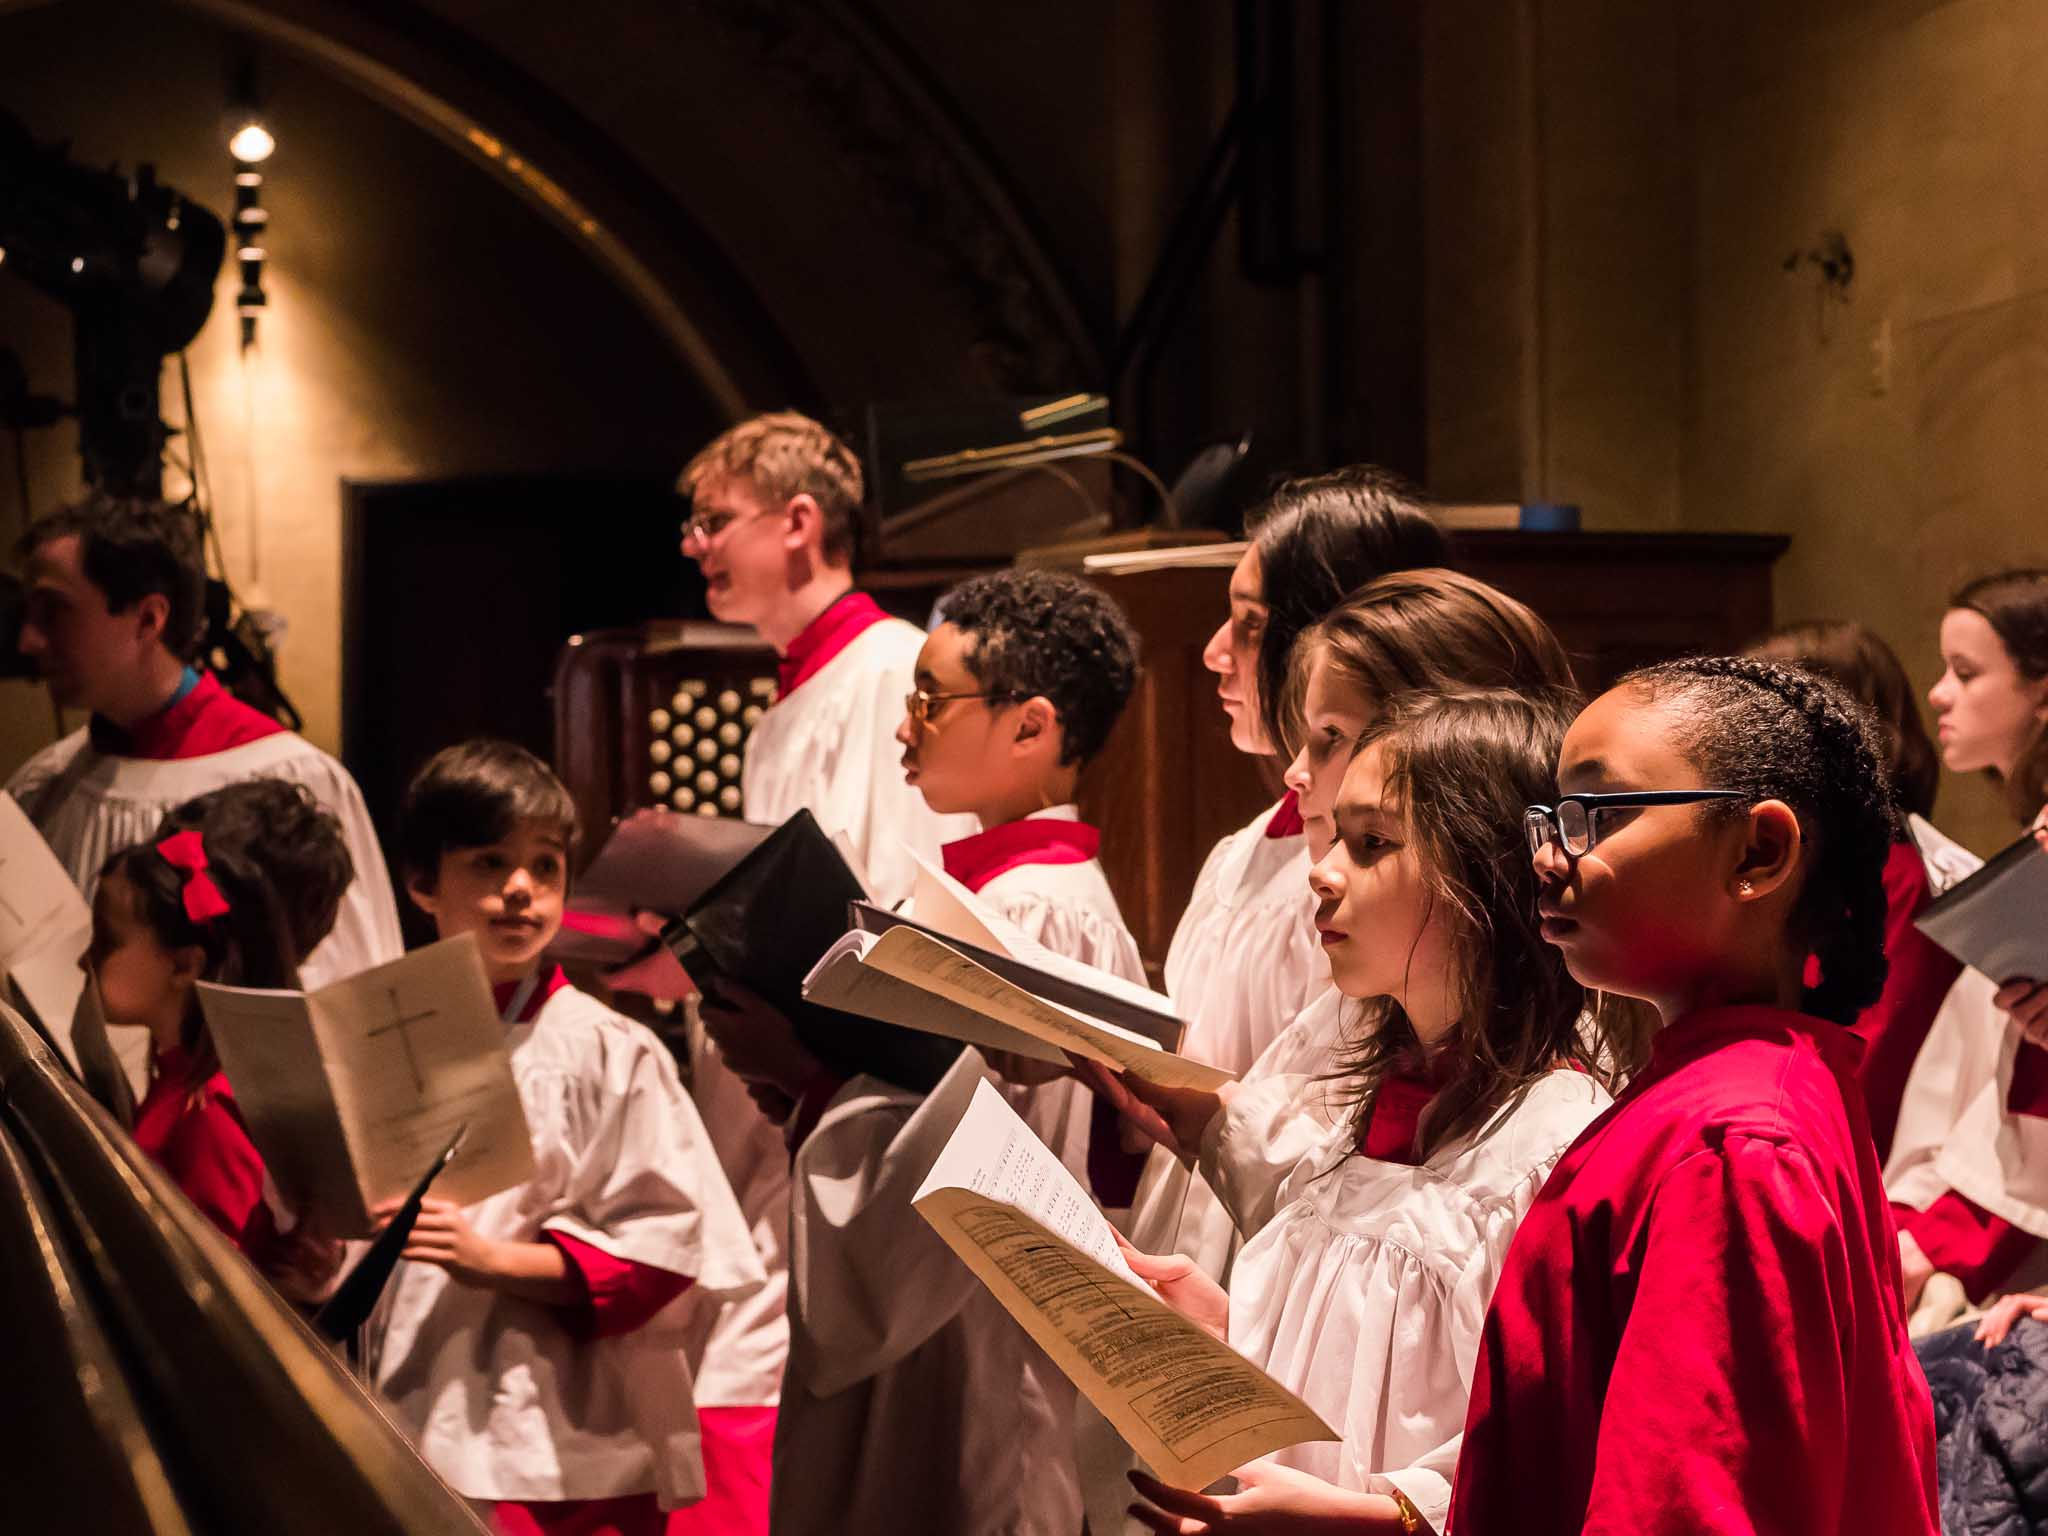 Evensong was sung by the Boy and Girl Choristers of Saint Bartholomew's Church, New York City    Photo by Ricardo Gomez